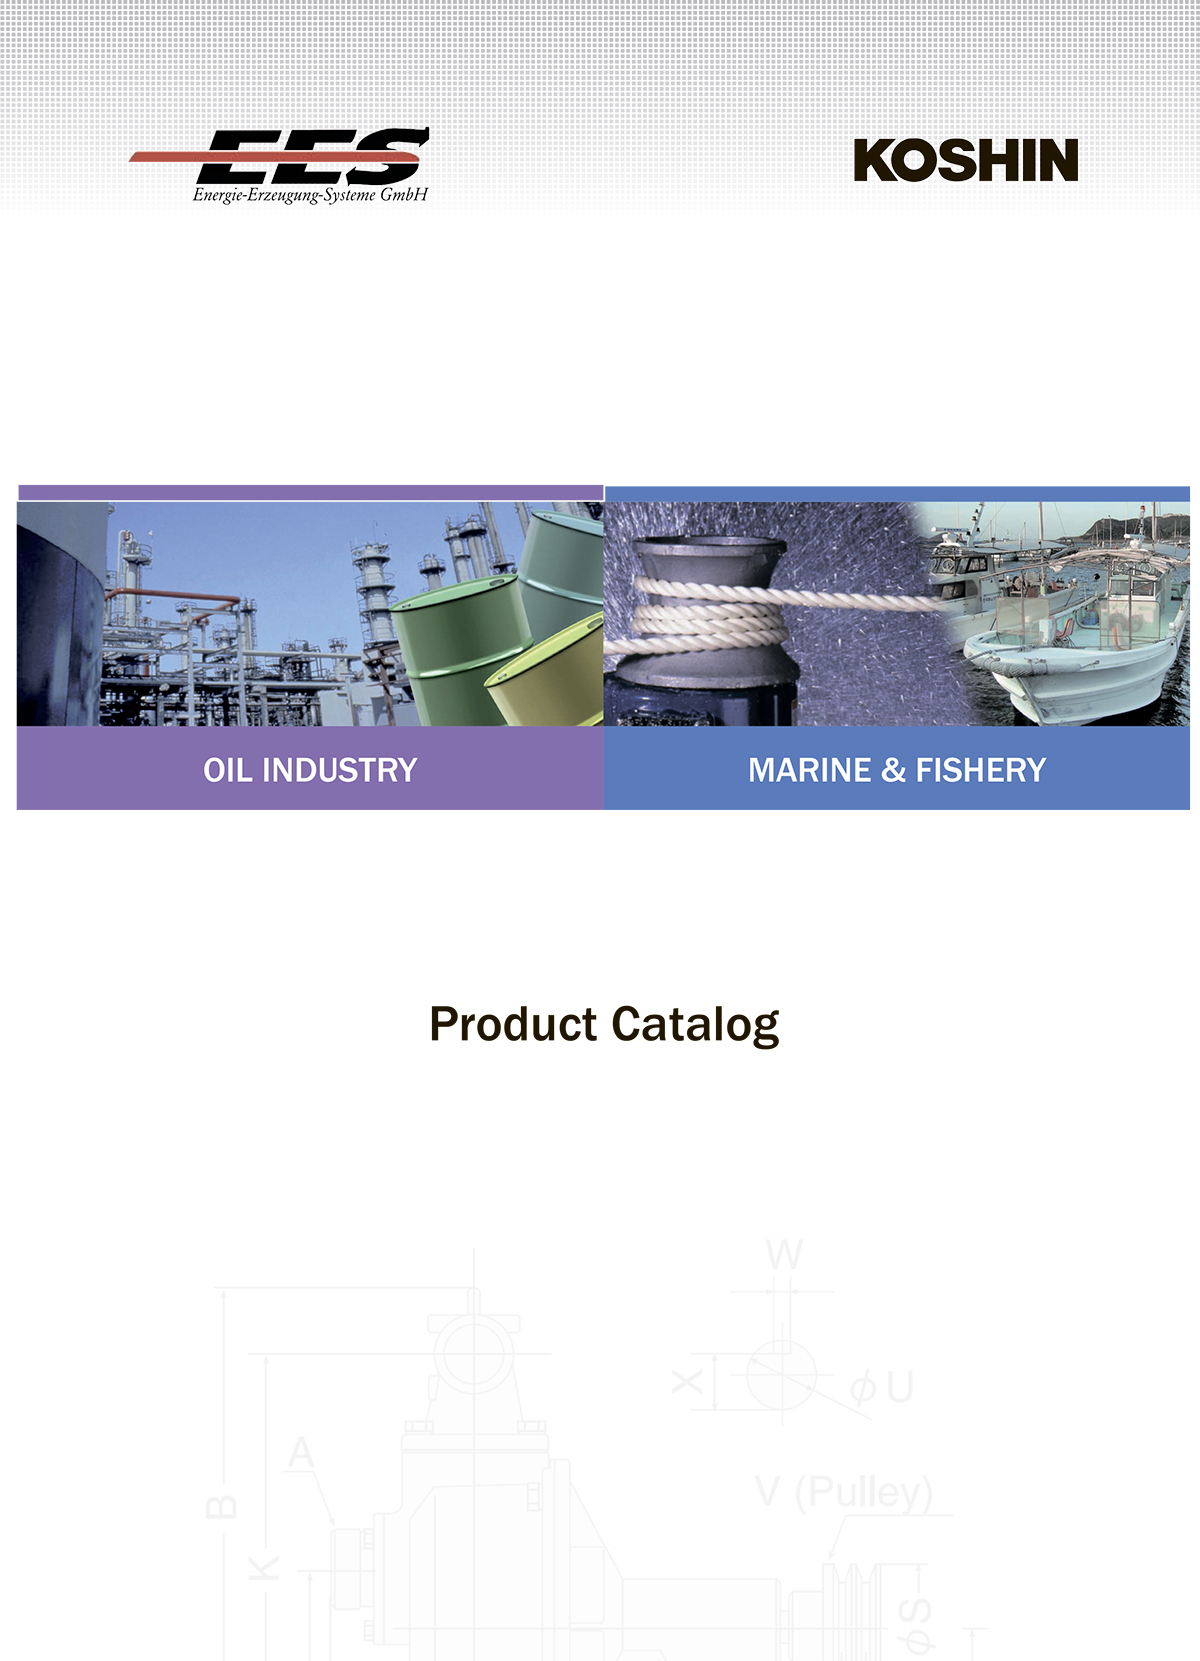 EES Koshin Industrial and Marine Product Catalog 2012 auf English (in English)